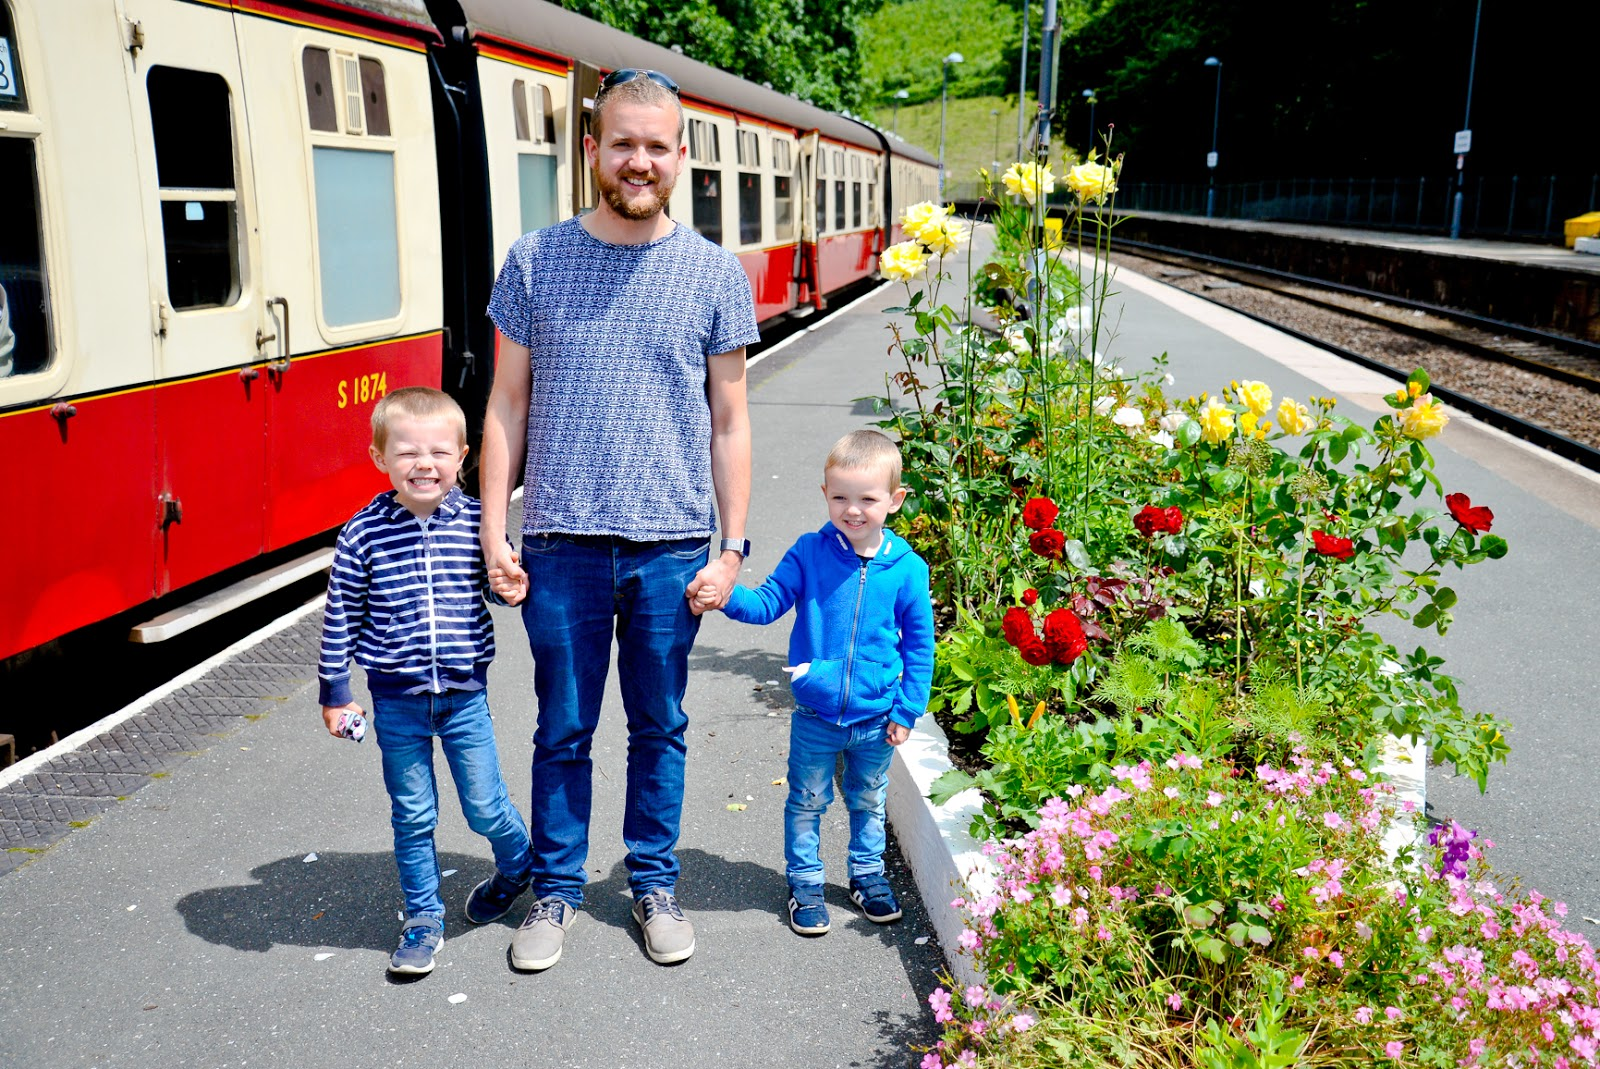 bodmin and wexford railway station, steam train cornwall, family travel, uk family holidays with kids